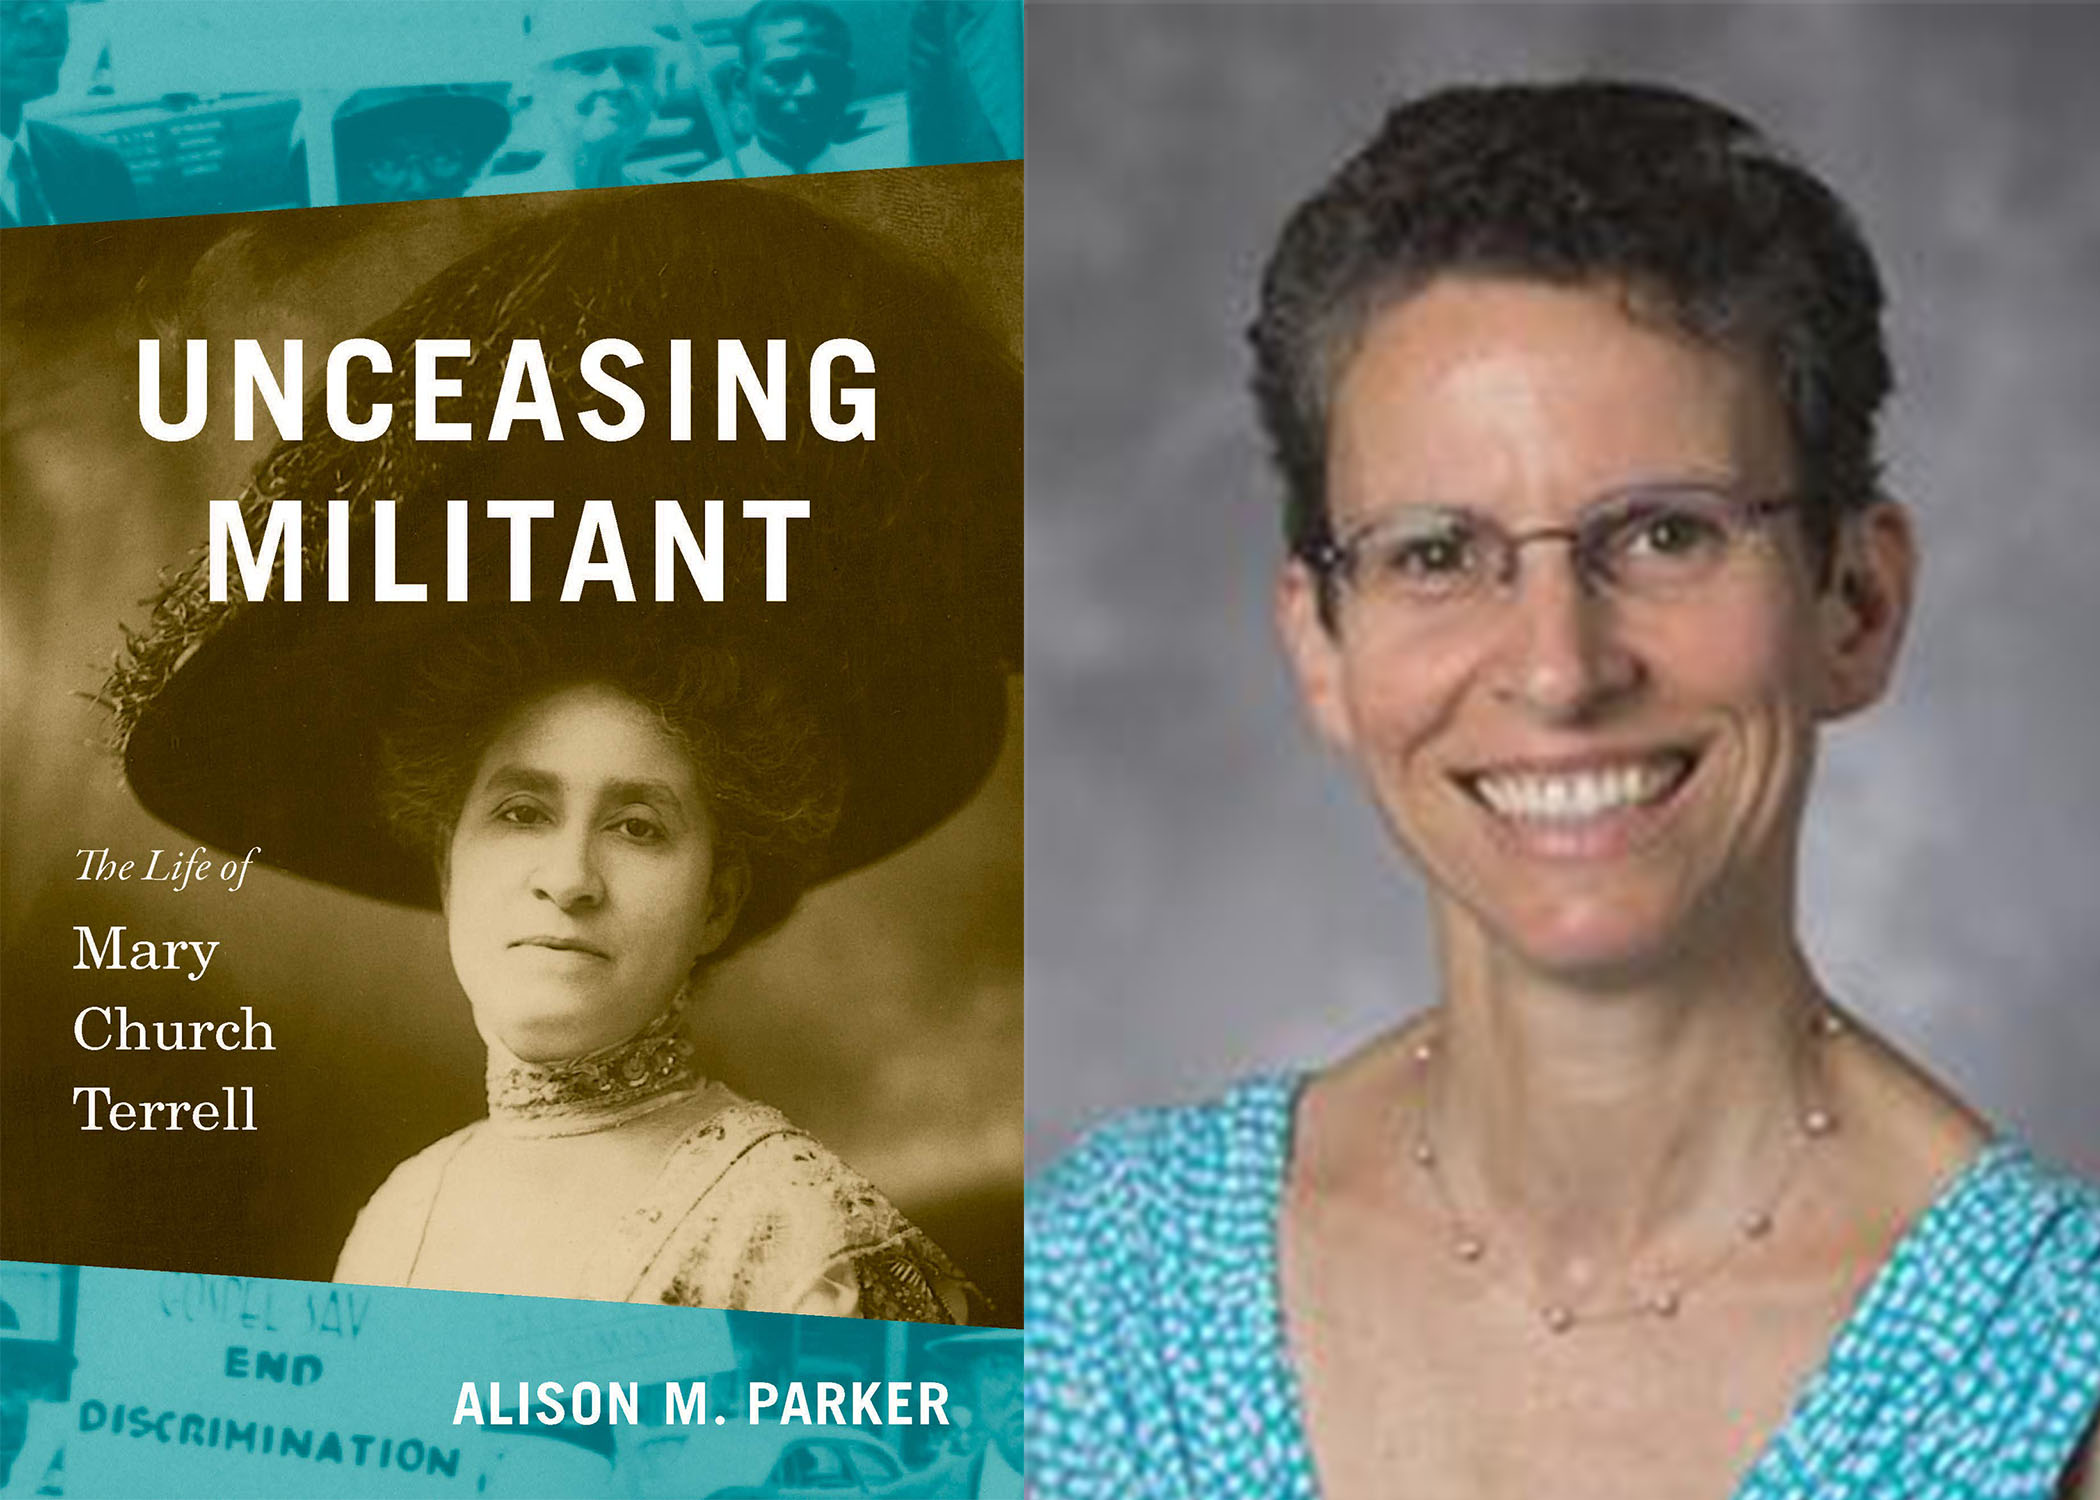 Image of Alison Parker and her Unceasing Militant book cover